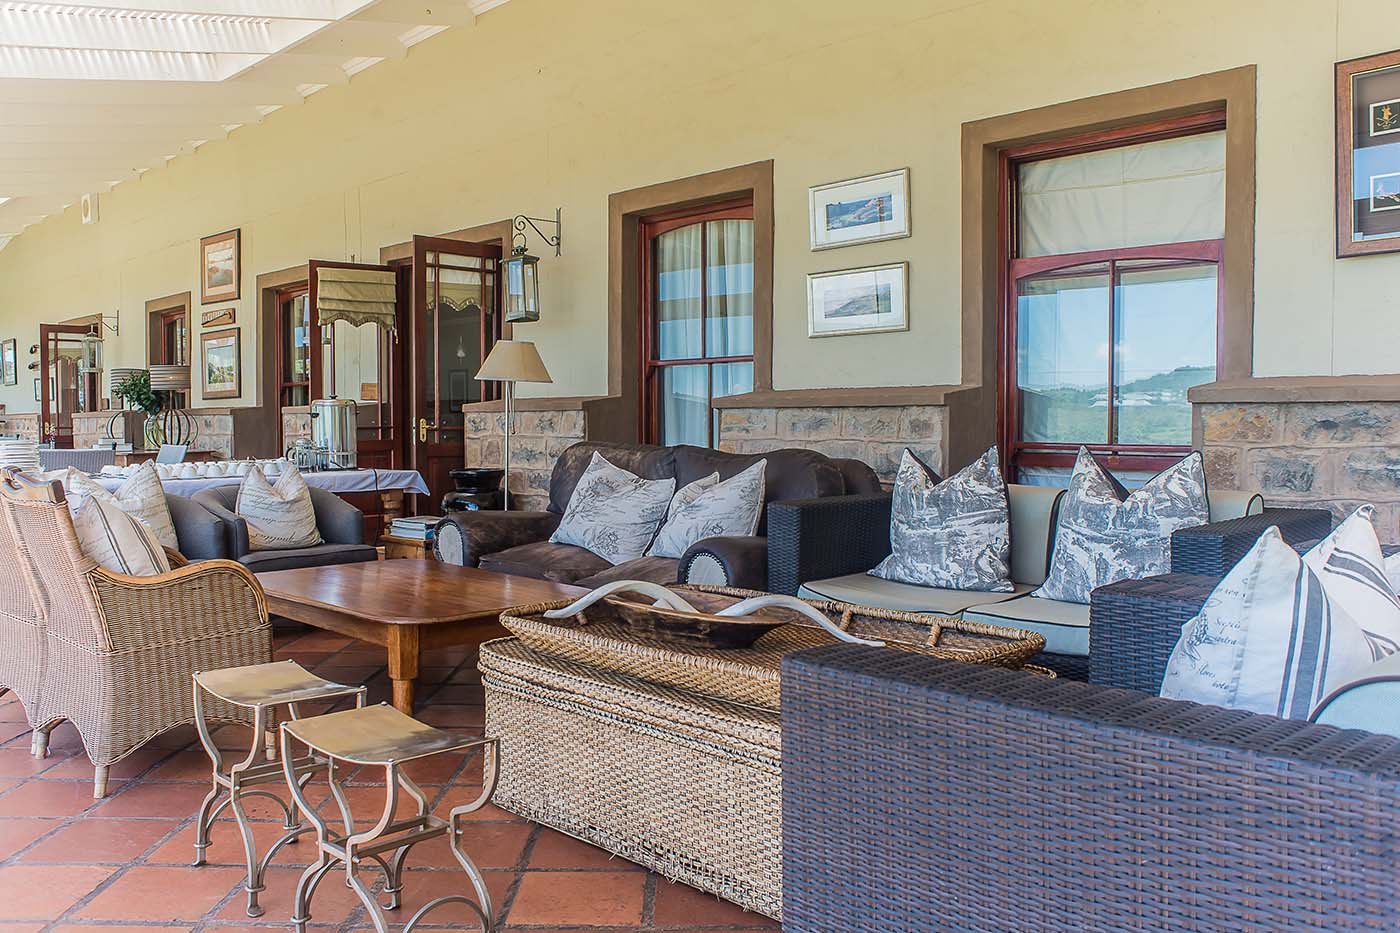 gowrie-club-house-gallery-golf-lodge-property-midlands-drakensberg-development-kzn-luxury-country-lifestyle